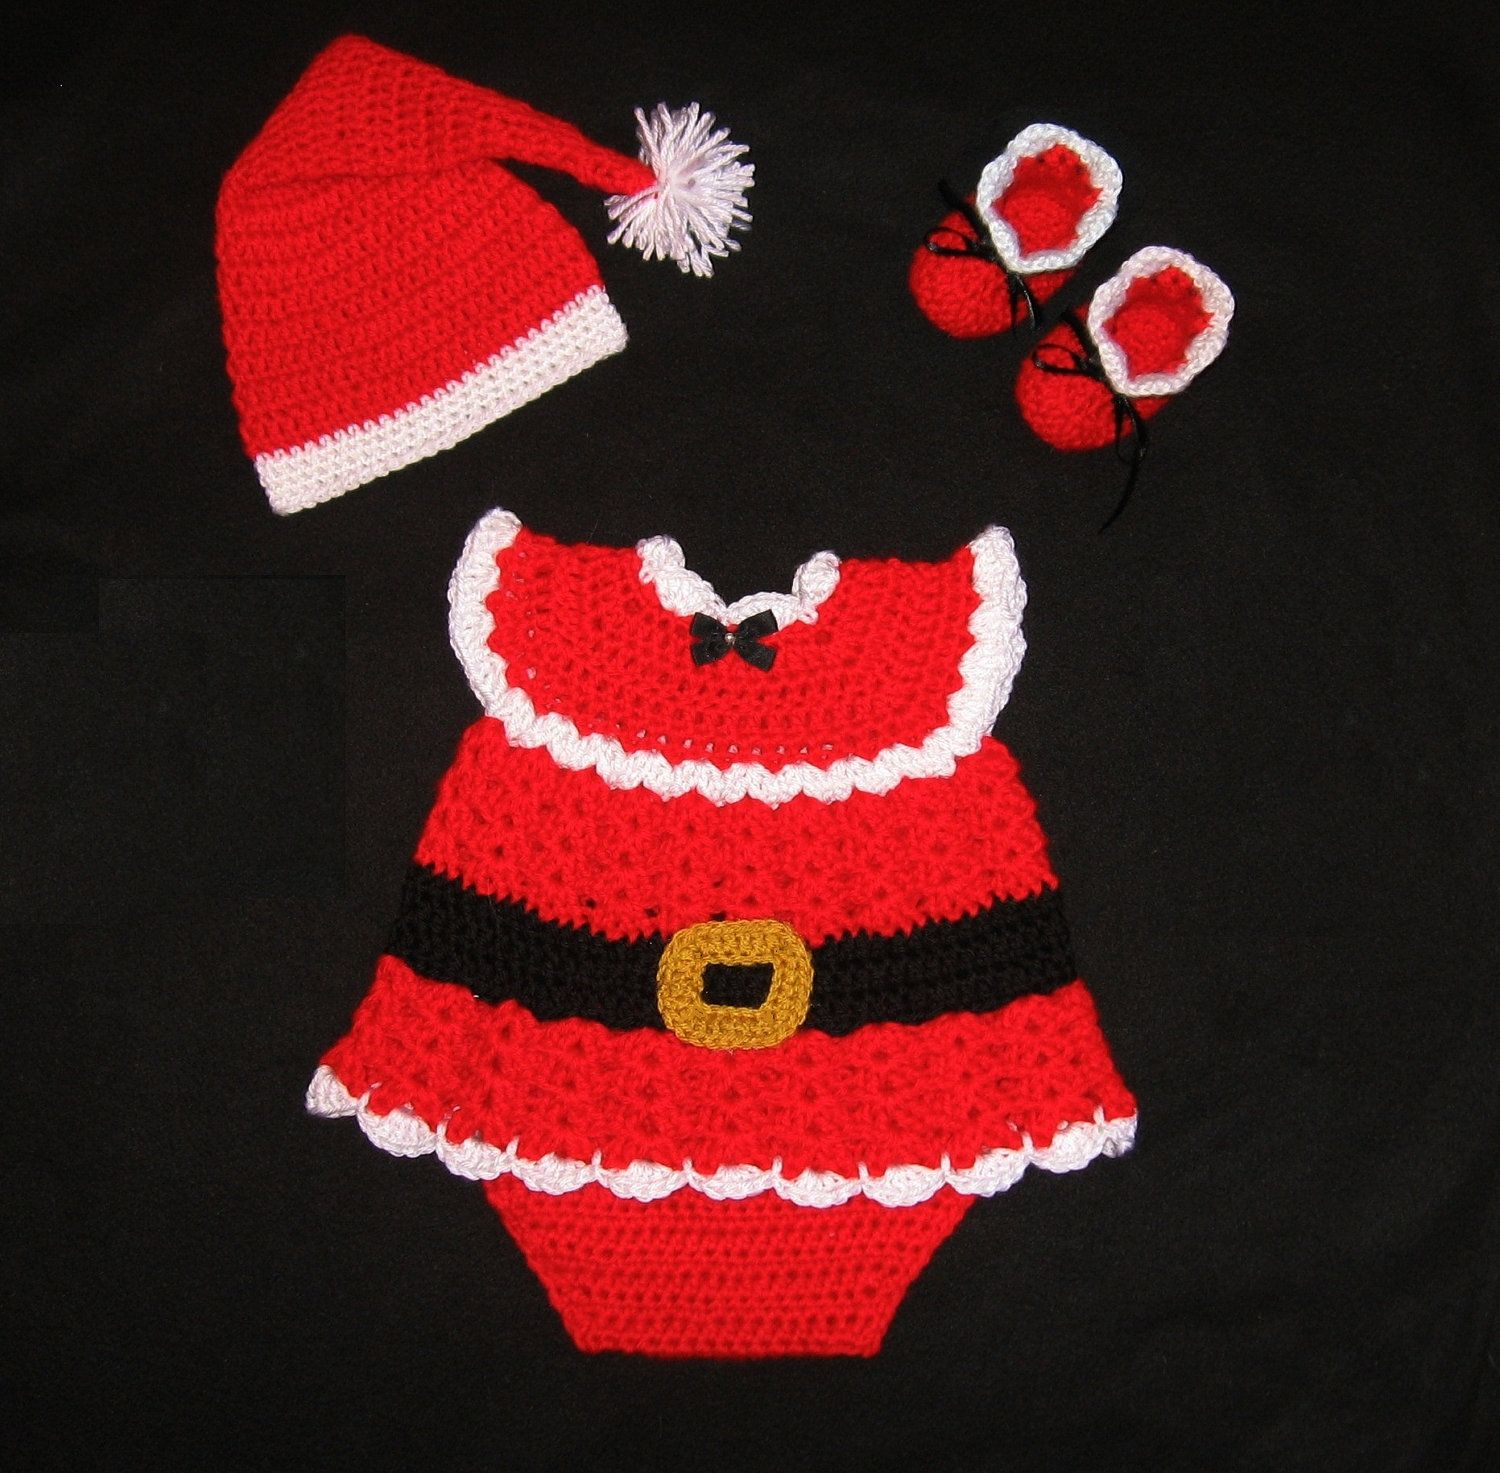 Baby girl crochet santa diaper dress set christmas baby set santa baby girl crochet santa diaper dress set christmas baby set santa claus dress set 3000 bankloansurffo Choice Image